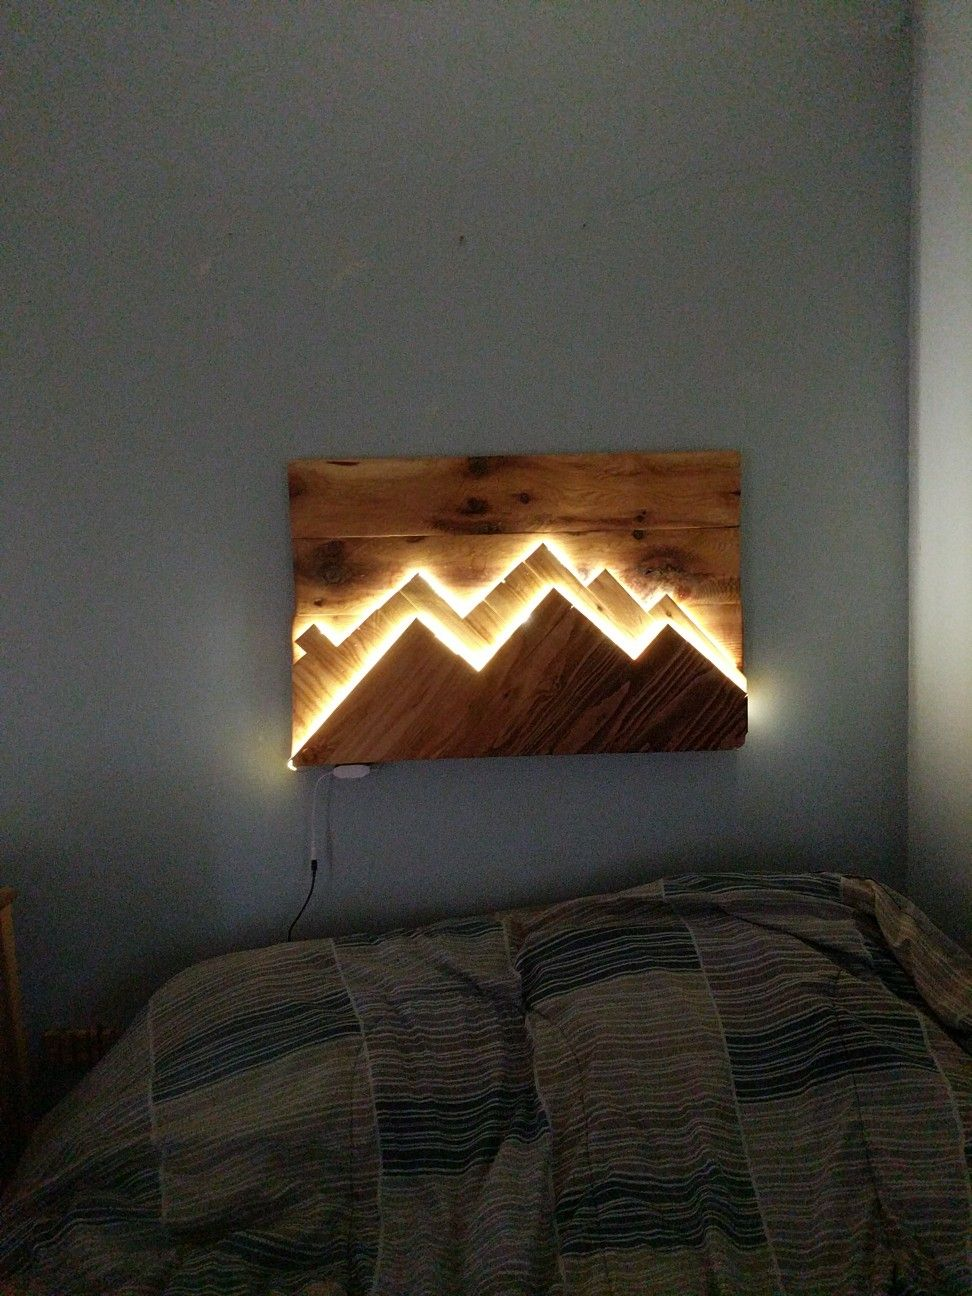 Lighted mountains wall art. Contact me for details on how